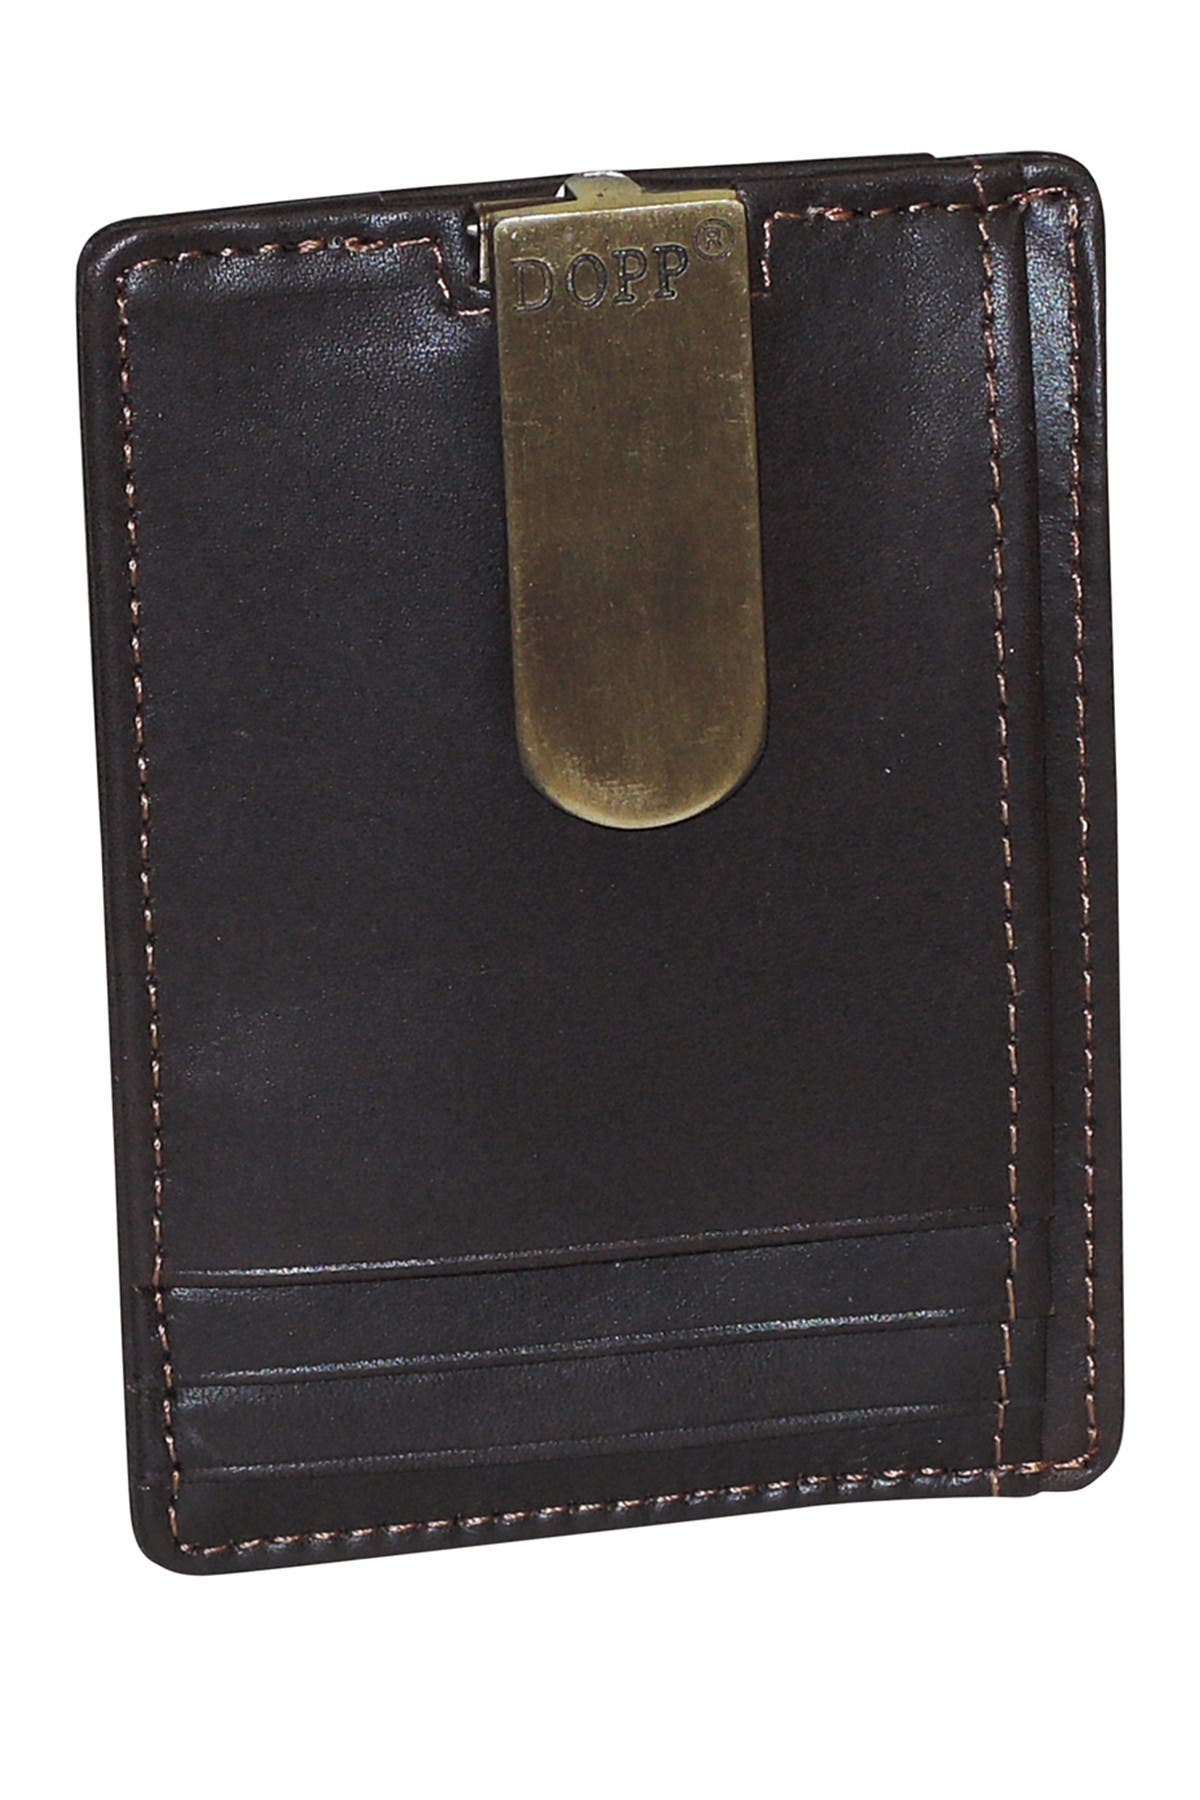 Image of Dopp Front Pocket Money Clip Leather Card Holder